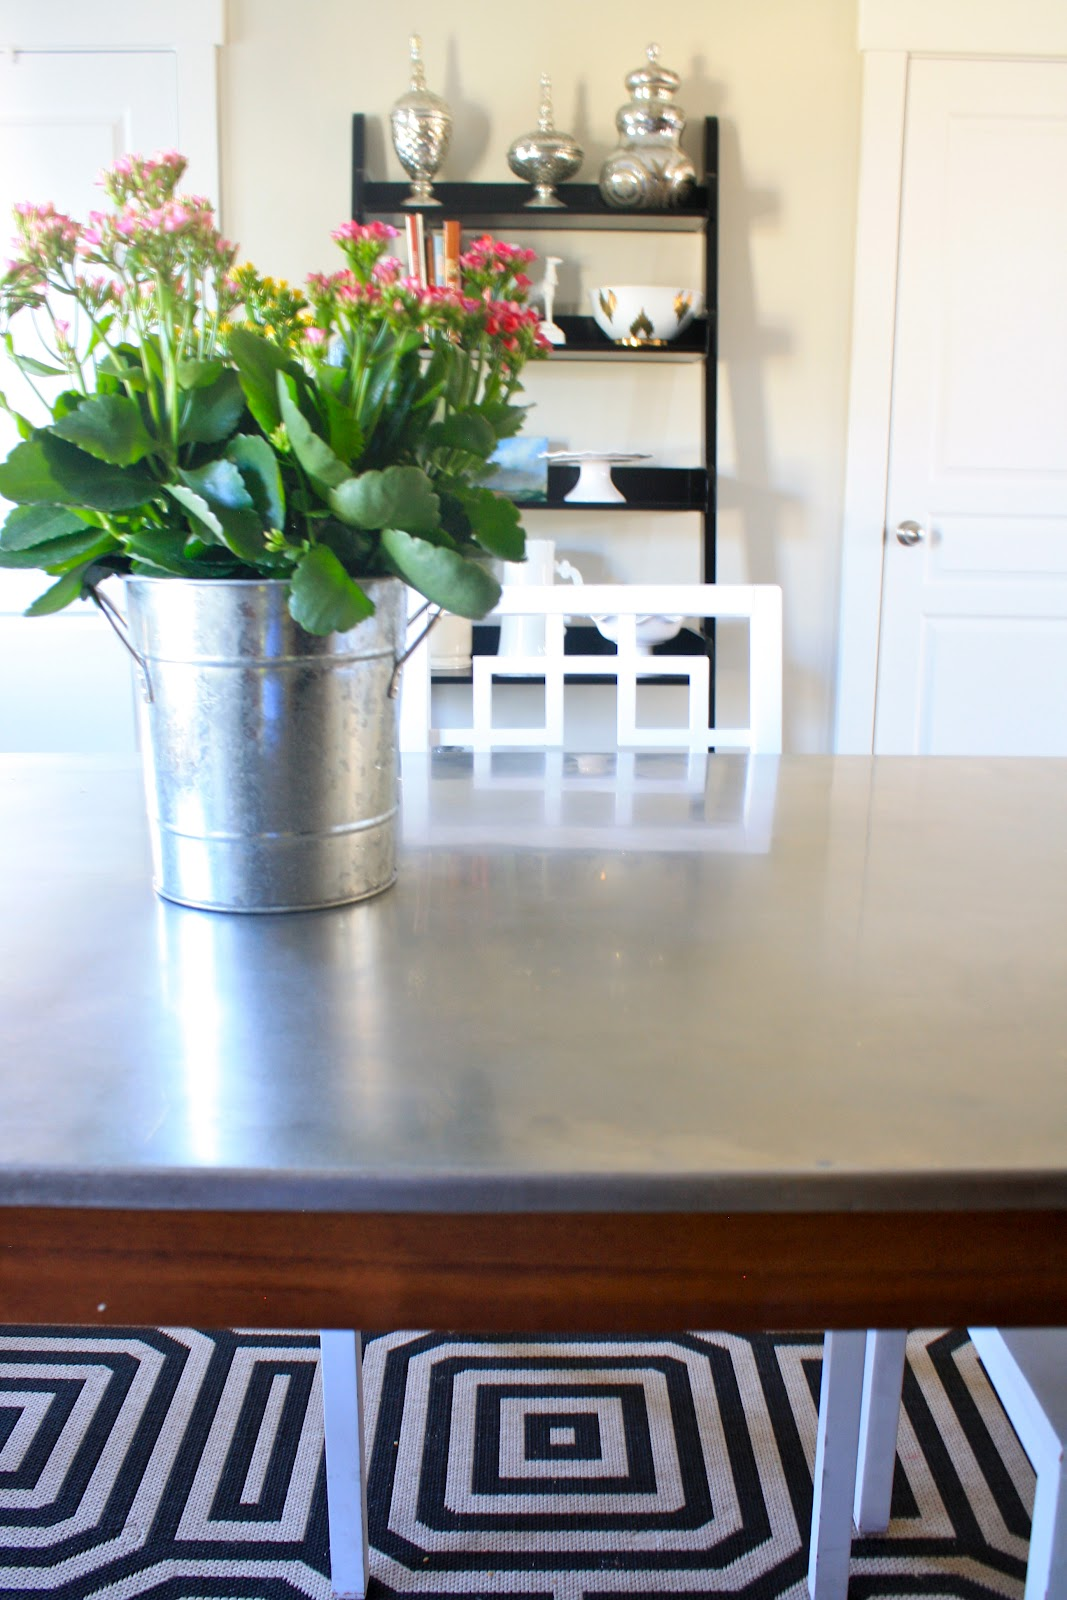 I Finally Have a New Kitchen Table! - House of Jade ...